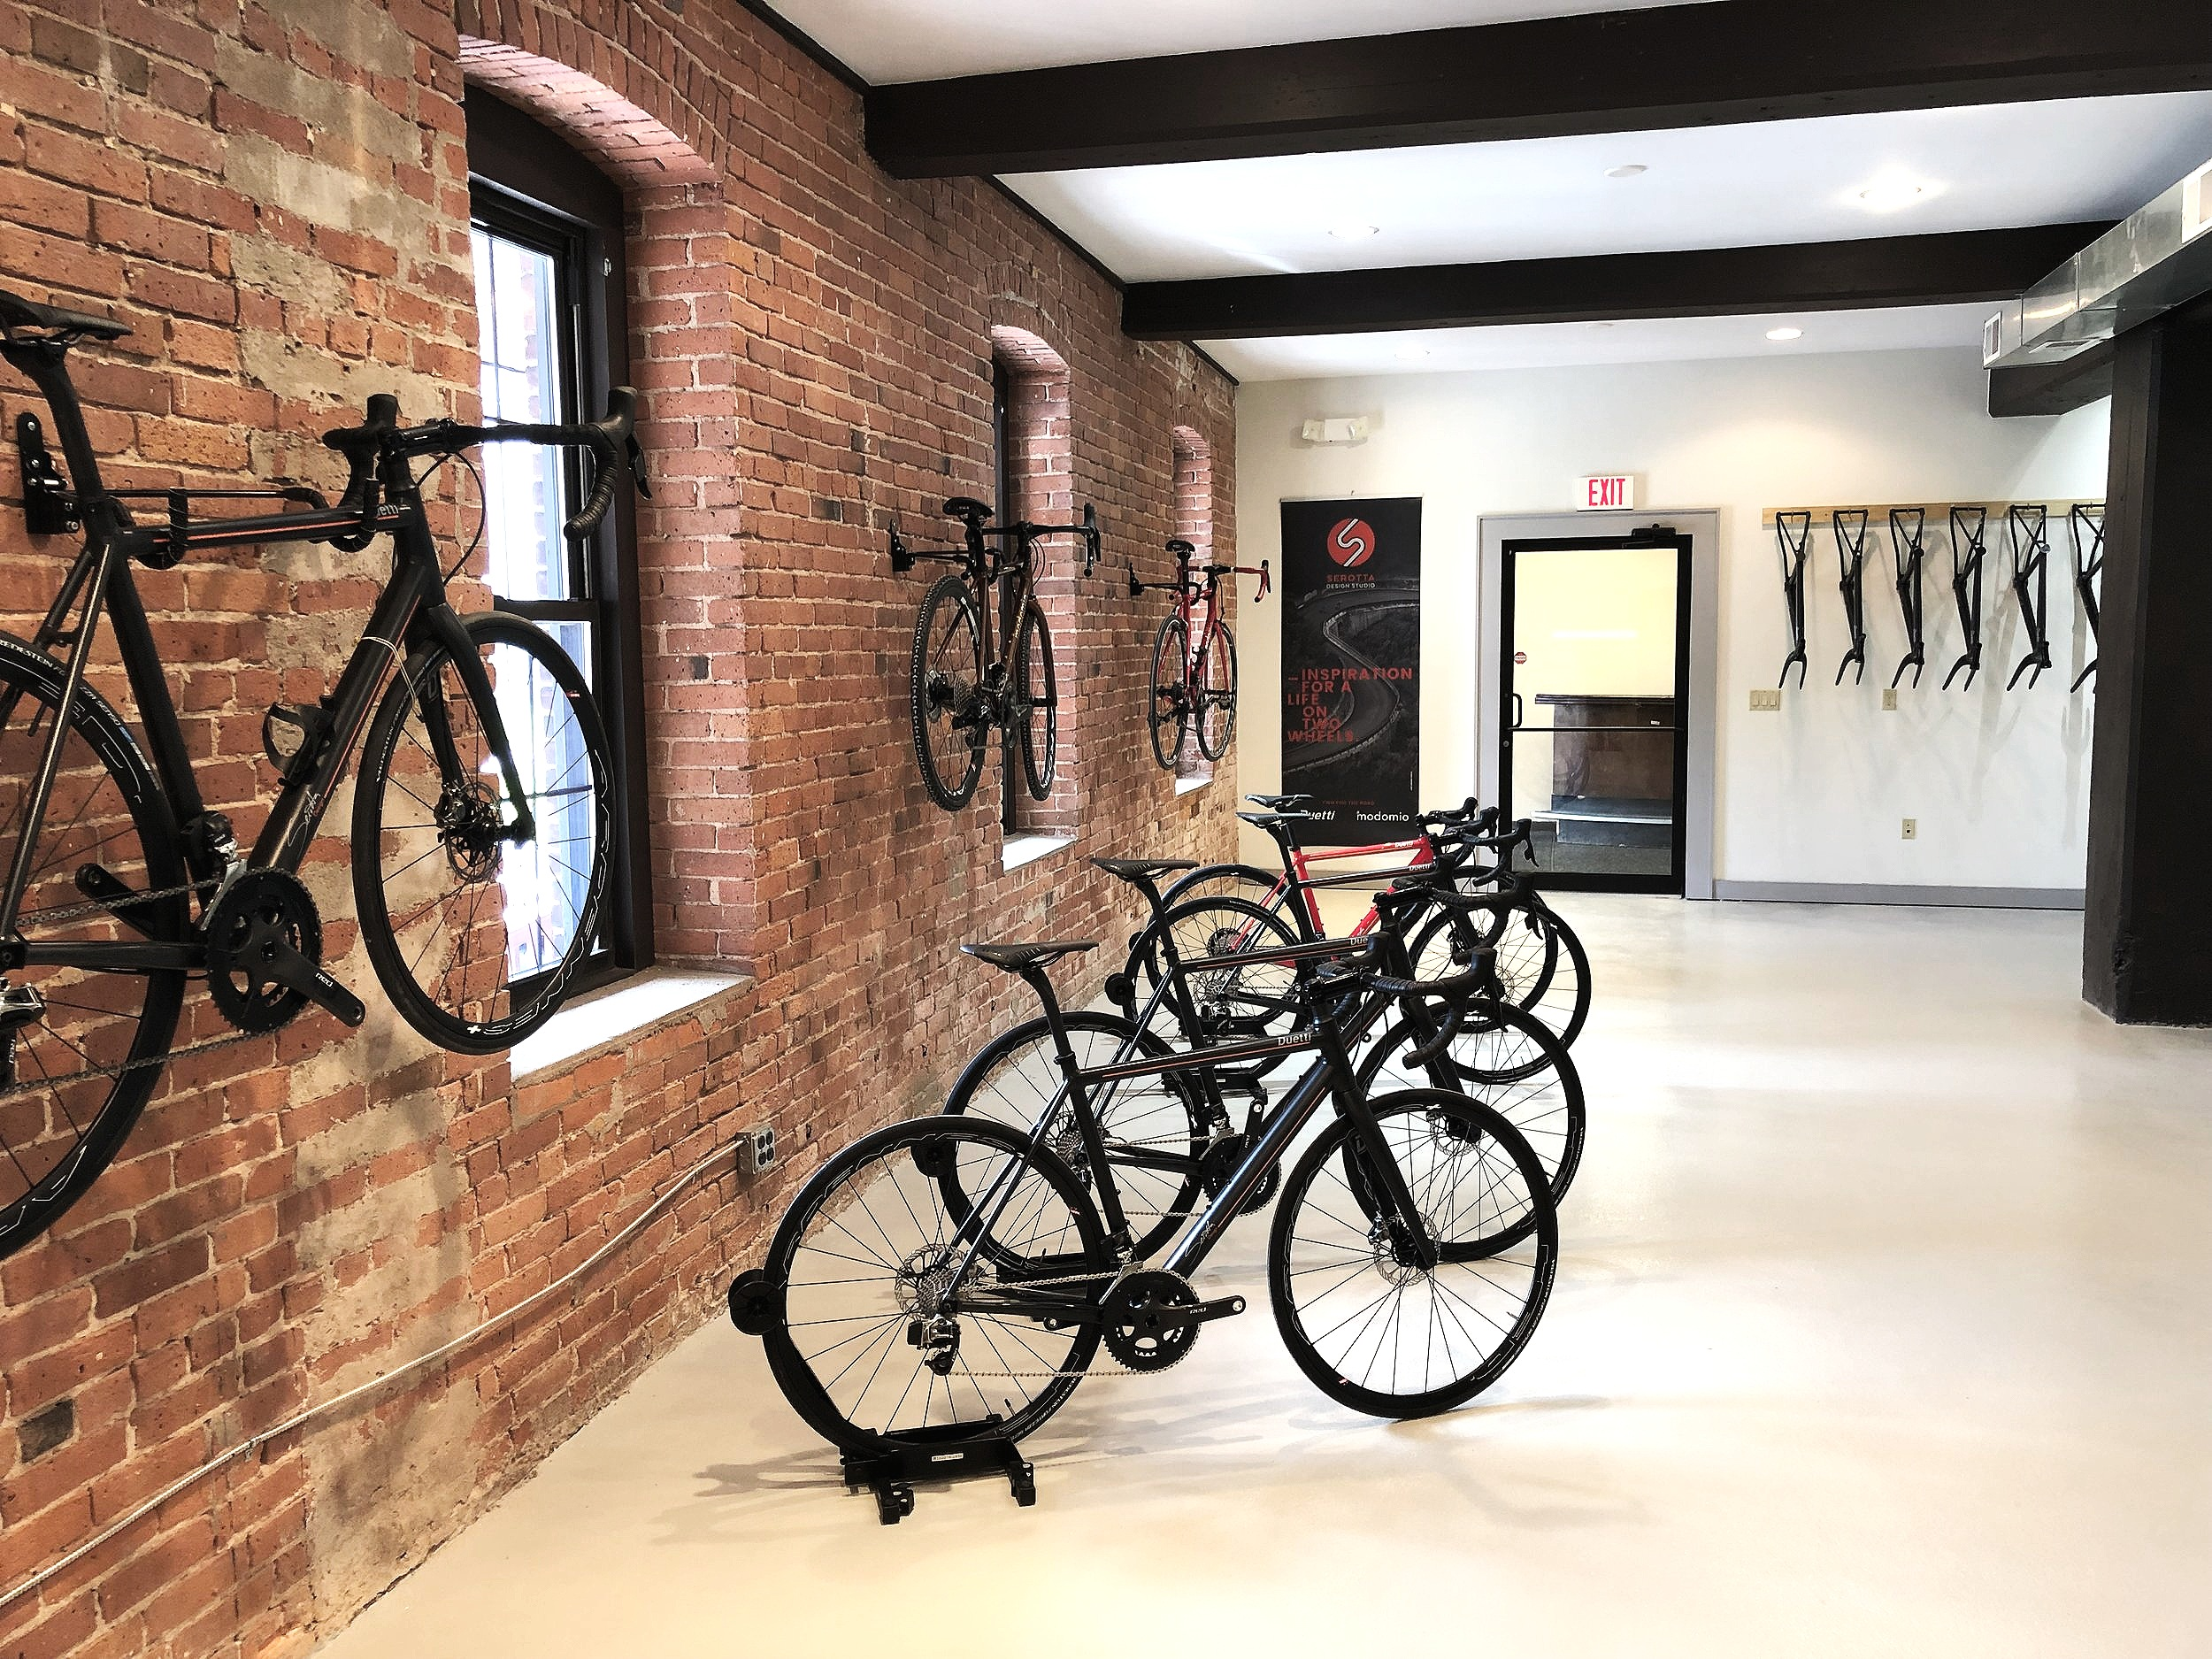 Welcome to the Serotta Cycle Design Studio Location. We are proud to announce our primary home base where design, assembly and bike fittings take place.